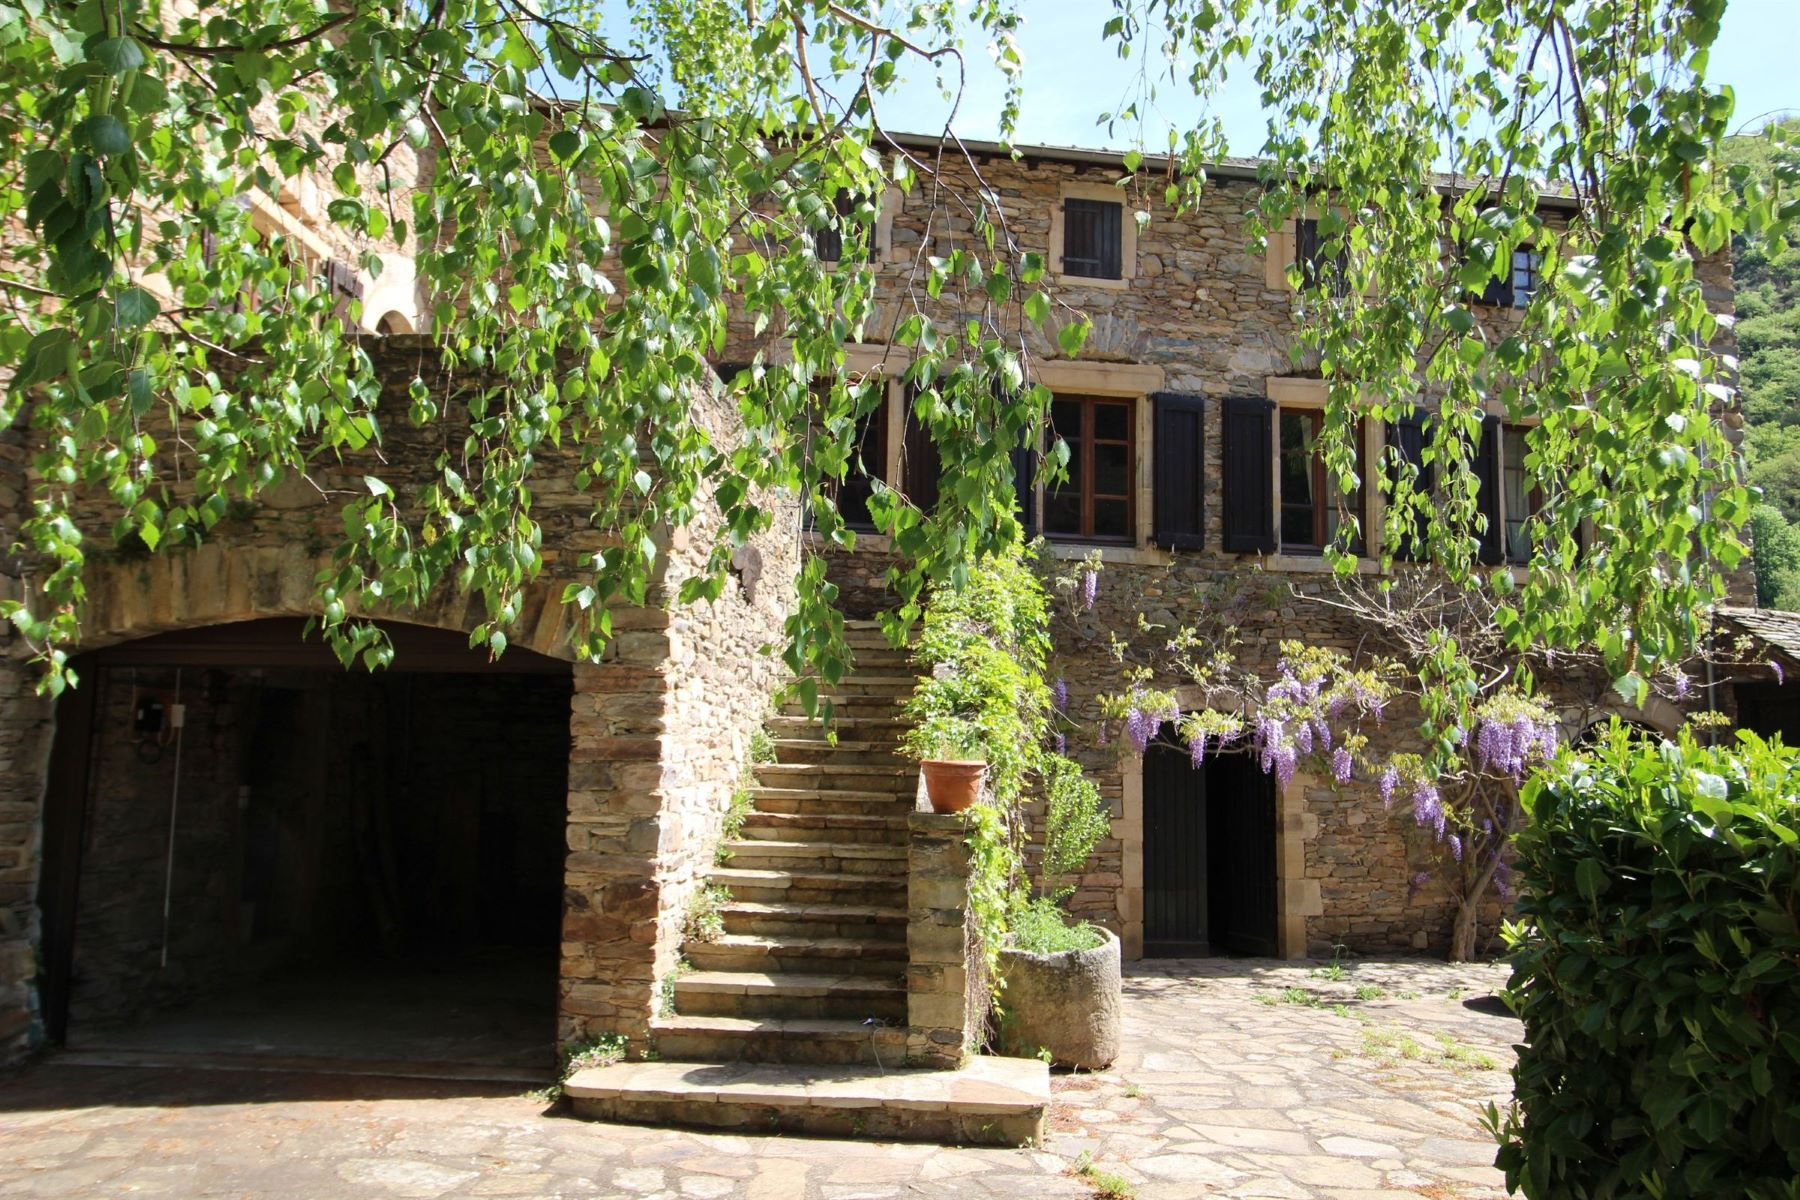 Single Family Homes for Sale at For sale - Classic Stone house in a village on the banks of the Tarn Requista, Midi Pyrenees 12170 France